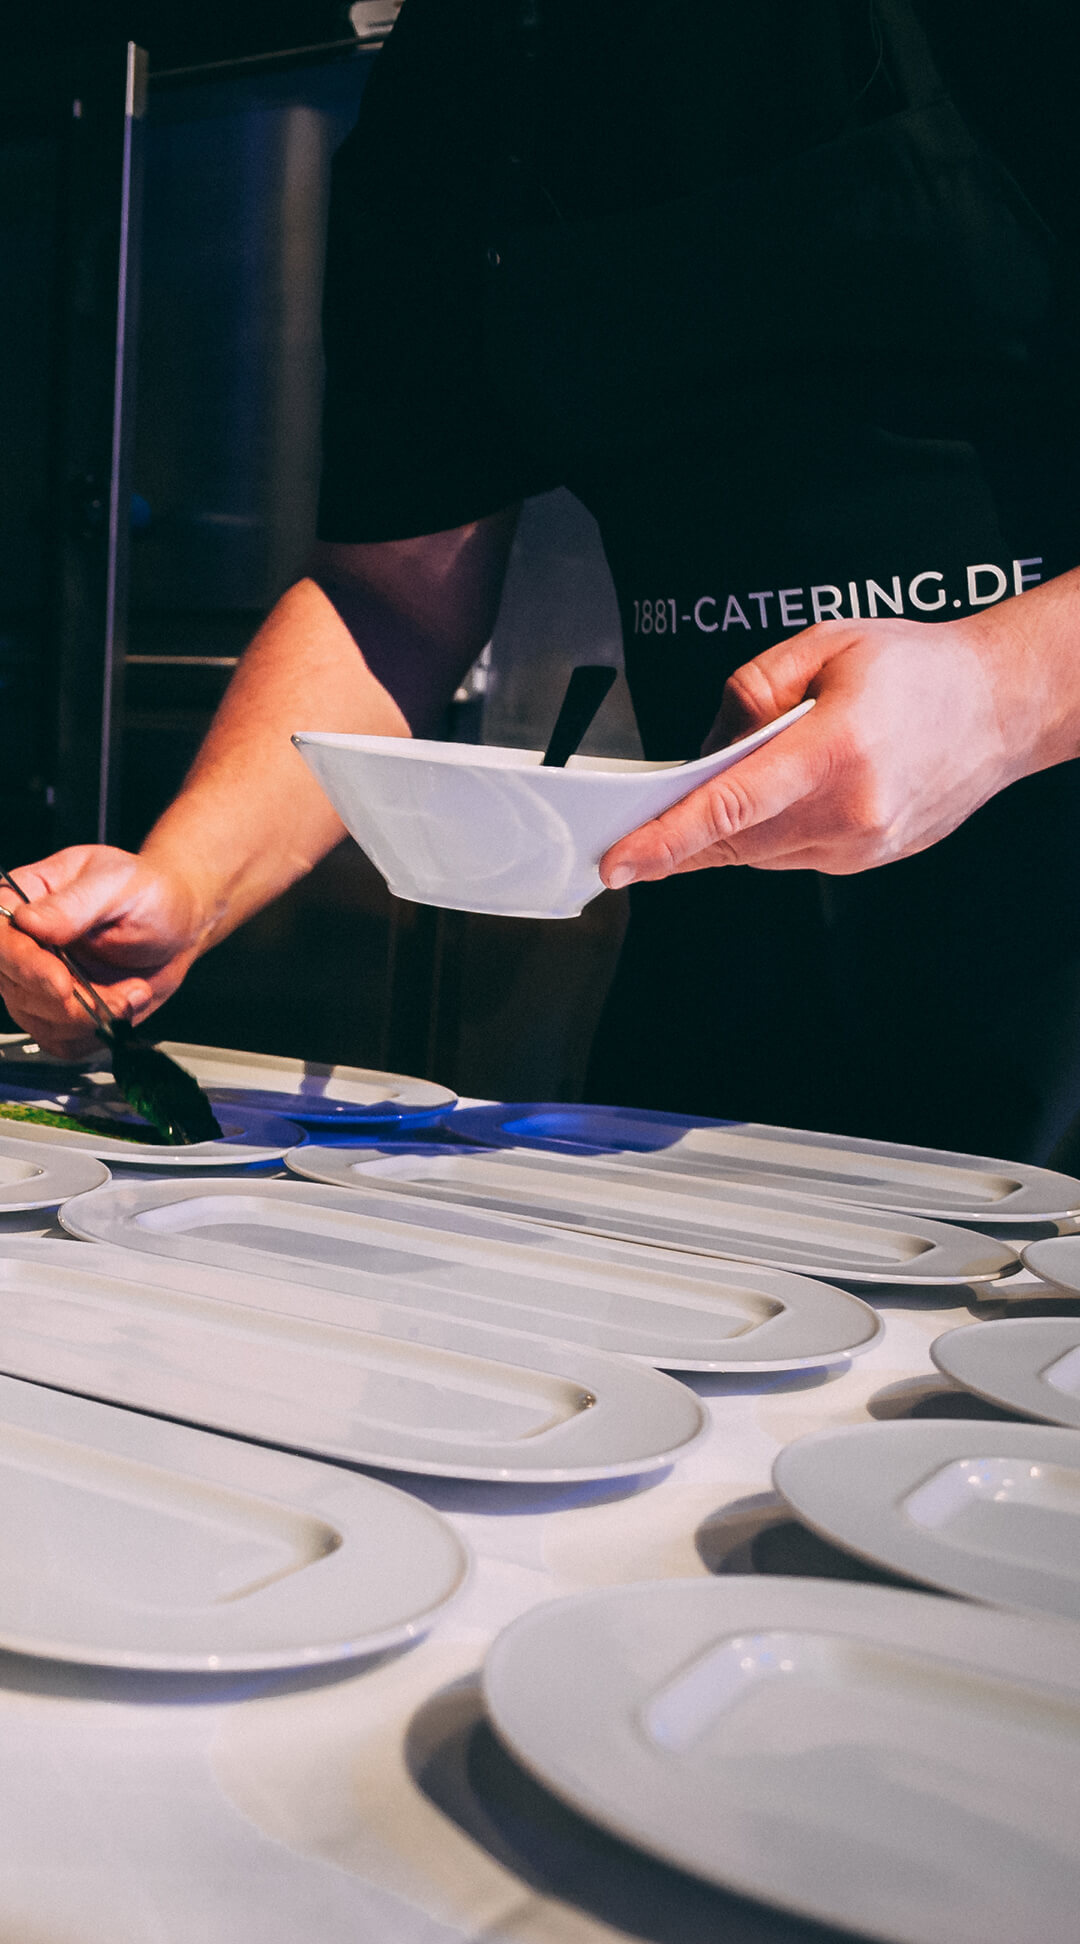 Catering Jobs in Ravensburg 1881 Catering